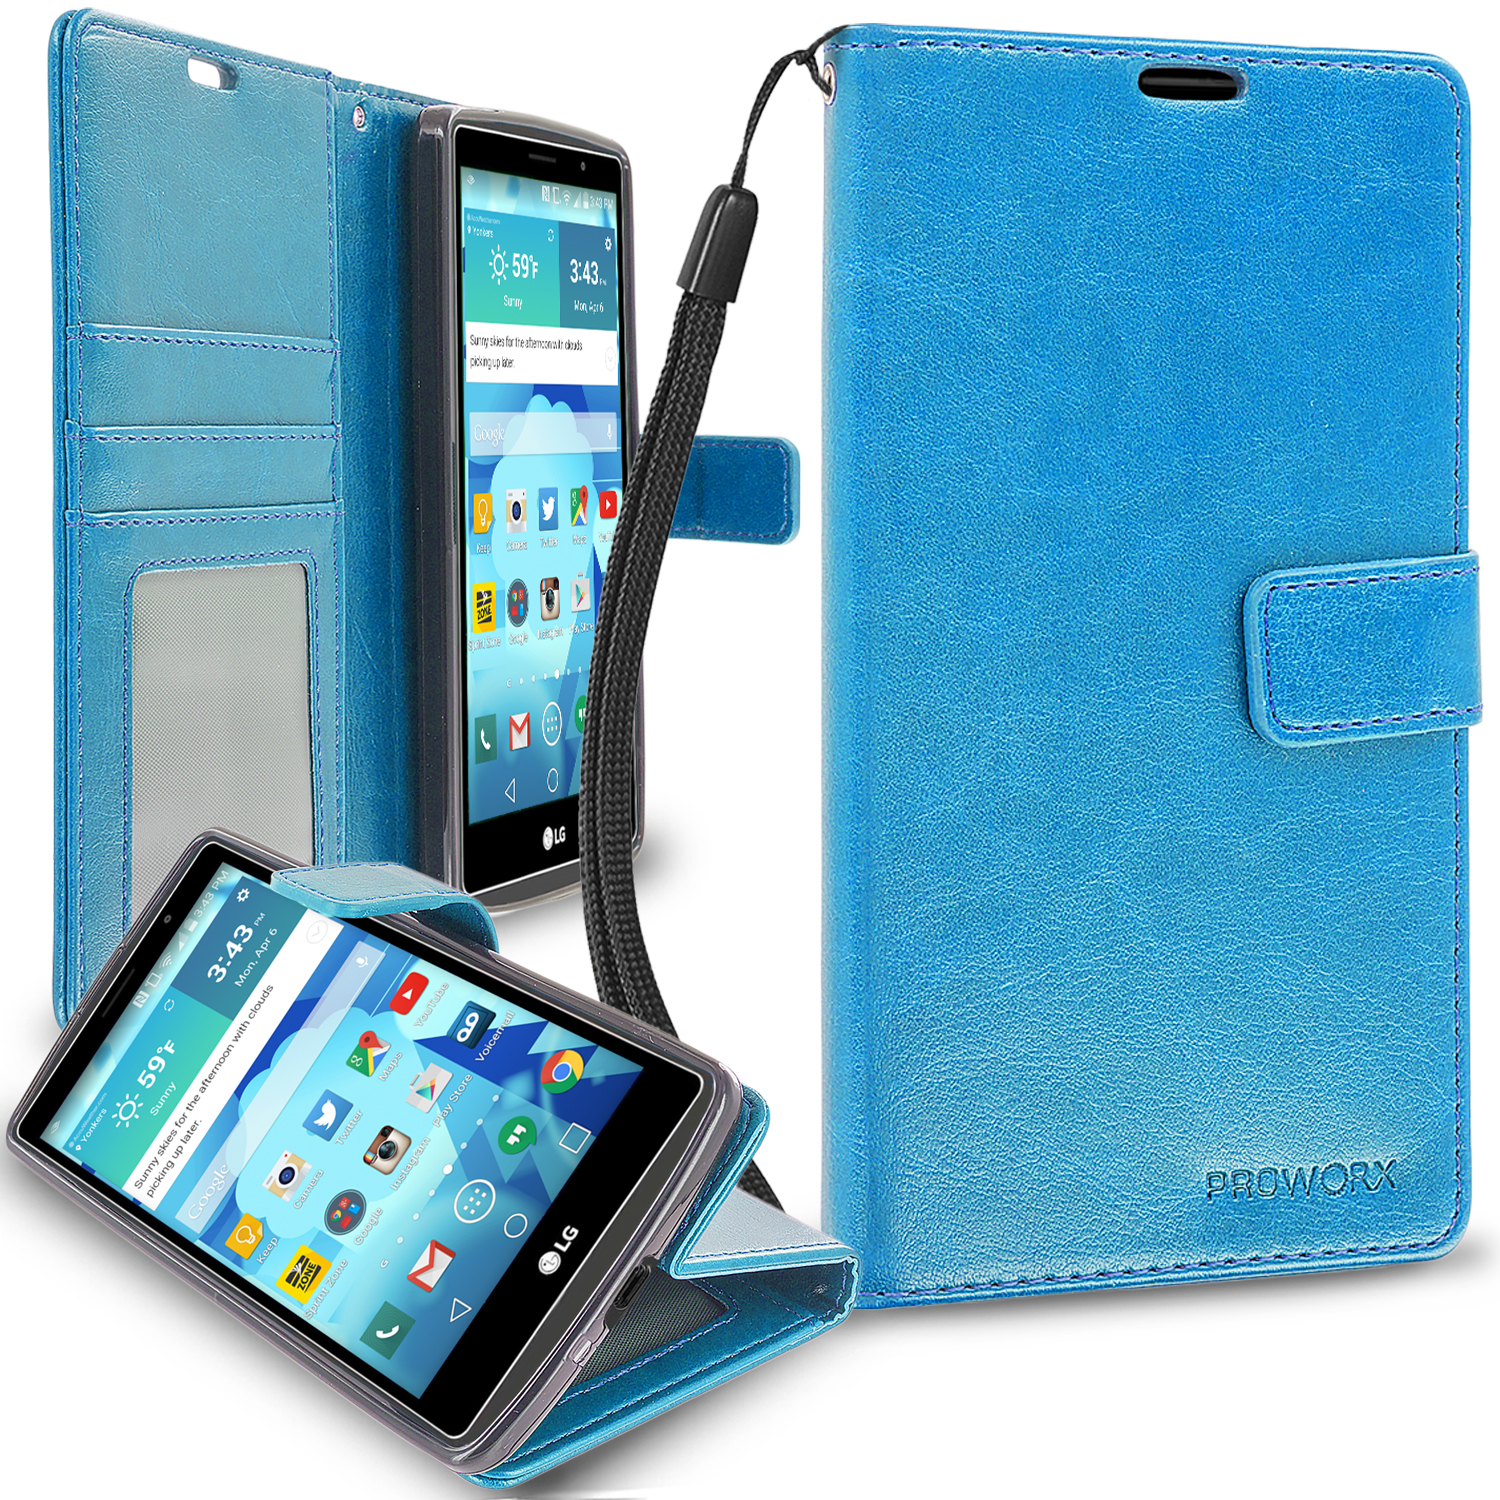 LG G Vista 2 Baby Blue ProWorx Wallet Case Luxury PU Leather Case Cover With Card Slots & Stand